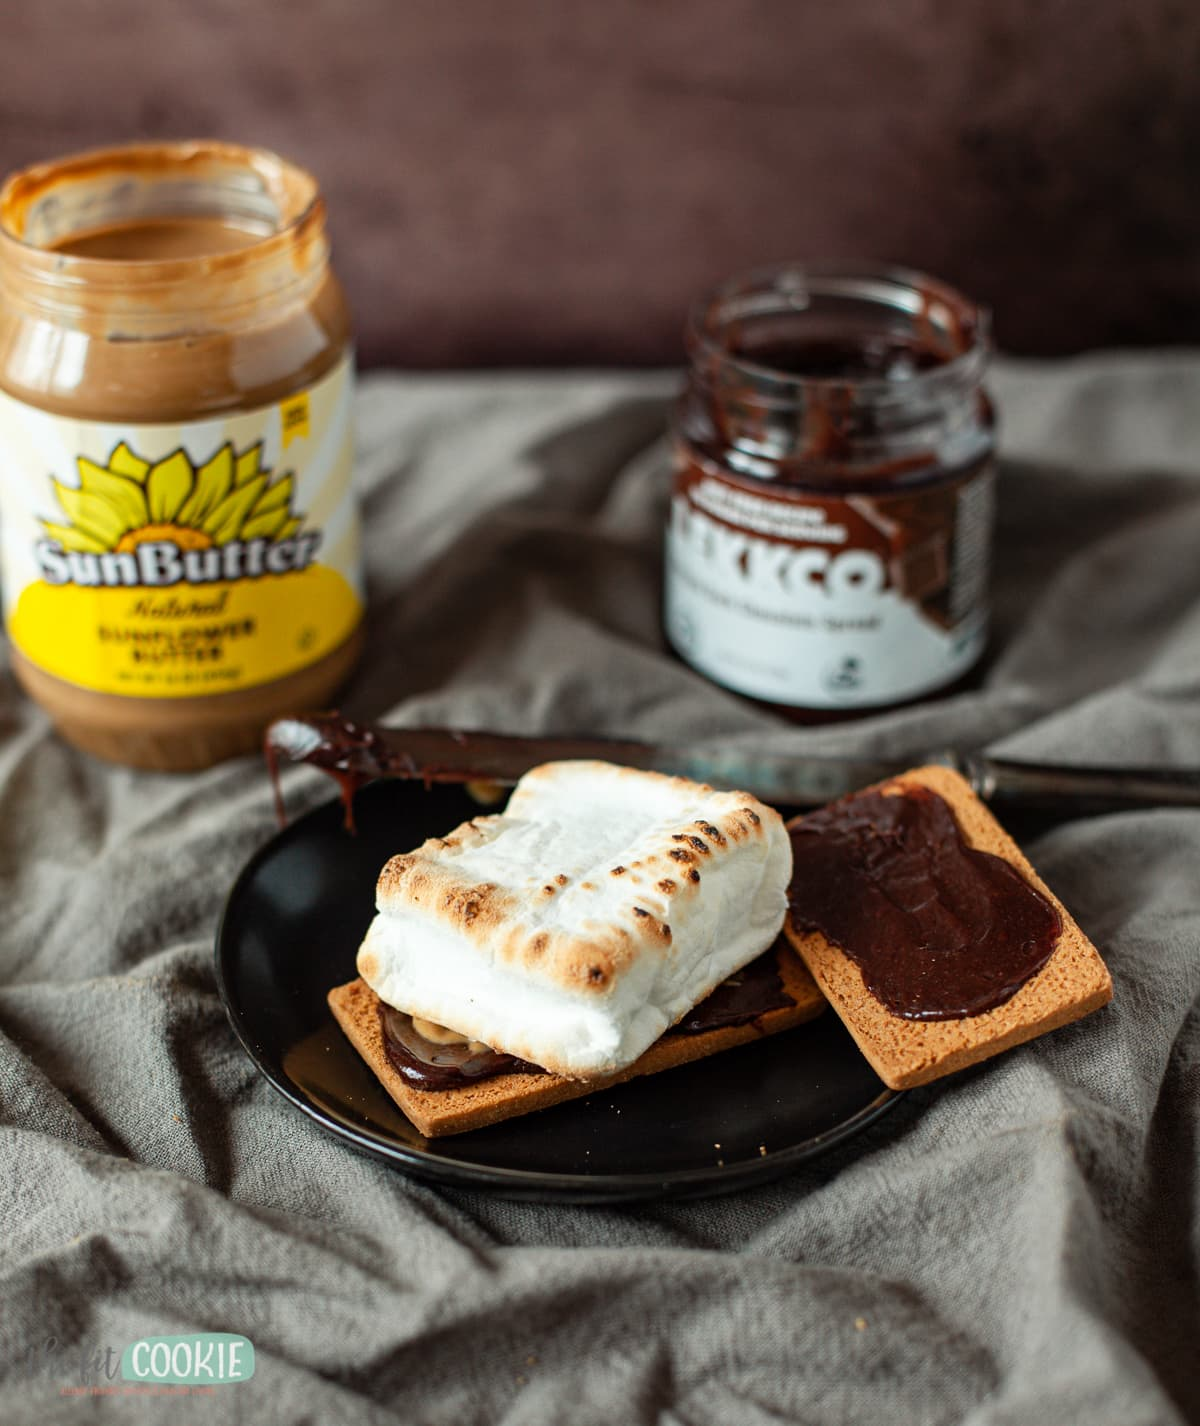 Photo of s'mores made with chocolate spread instead of chocolate bars